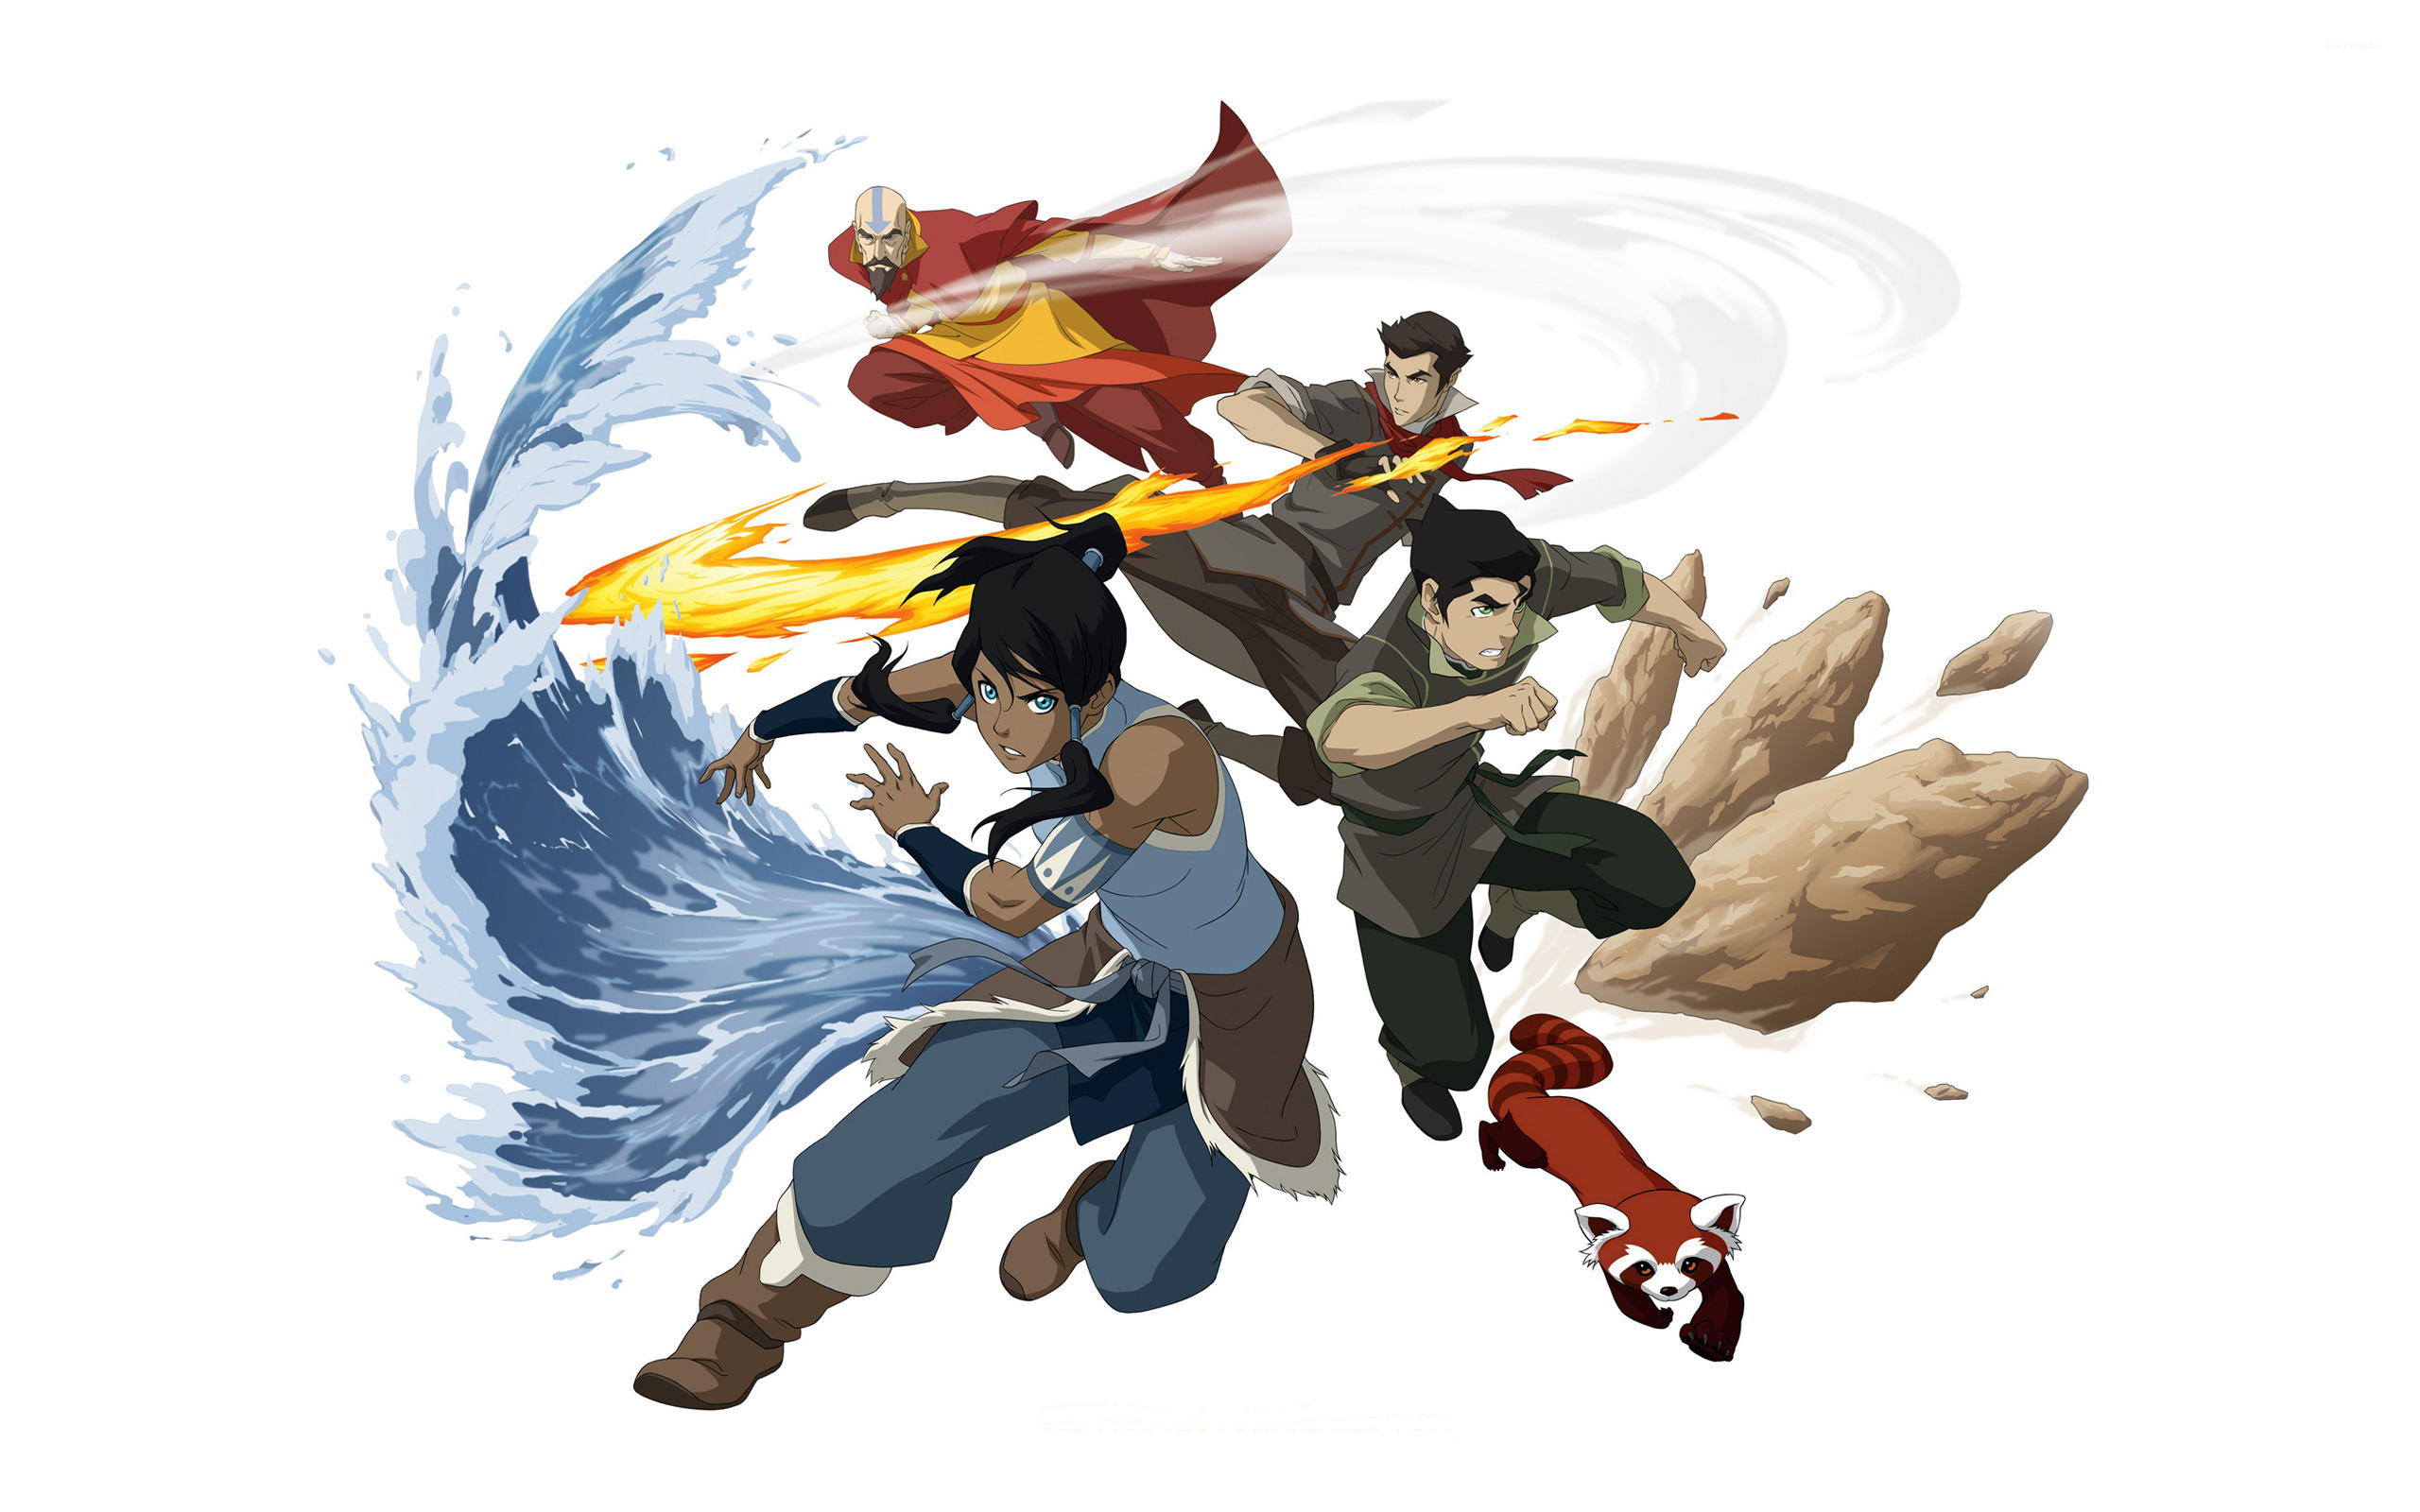 Avatar the legend of korra 3 wallpaper anime wallpapers 13610 avatar the legend of korra 3 wallpaper voltagebd Images